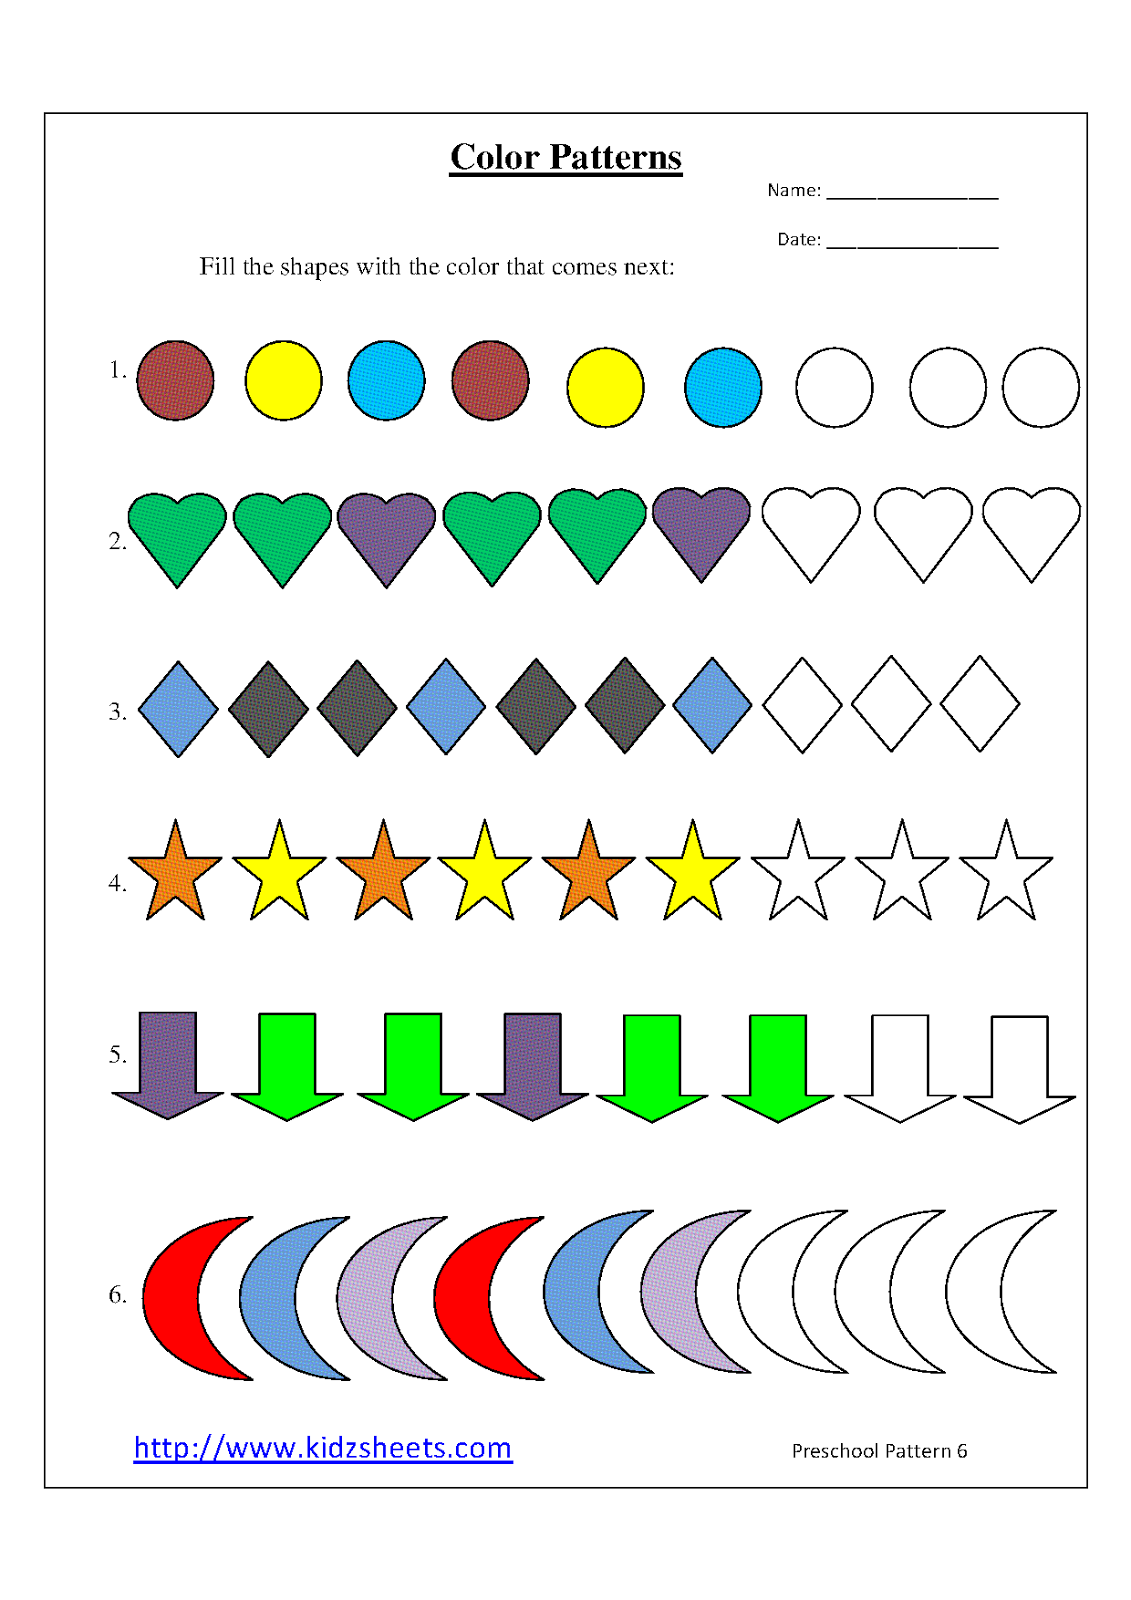 preschool color patterns - Color Patterns For Kids